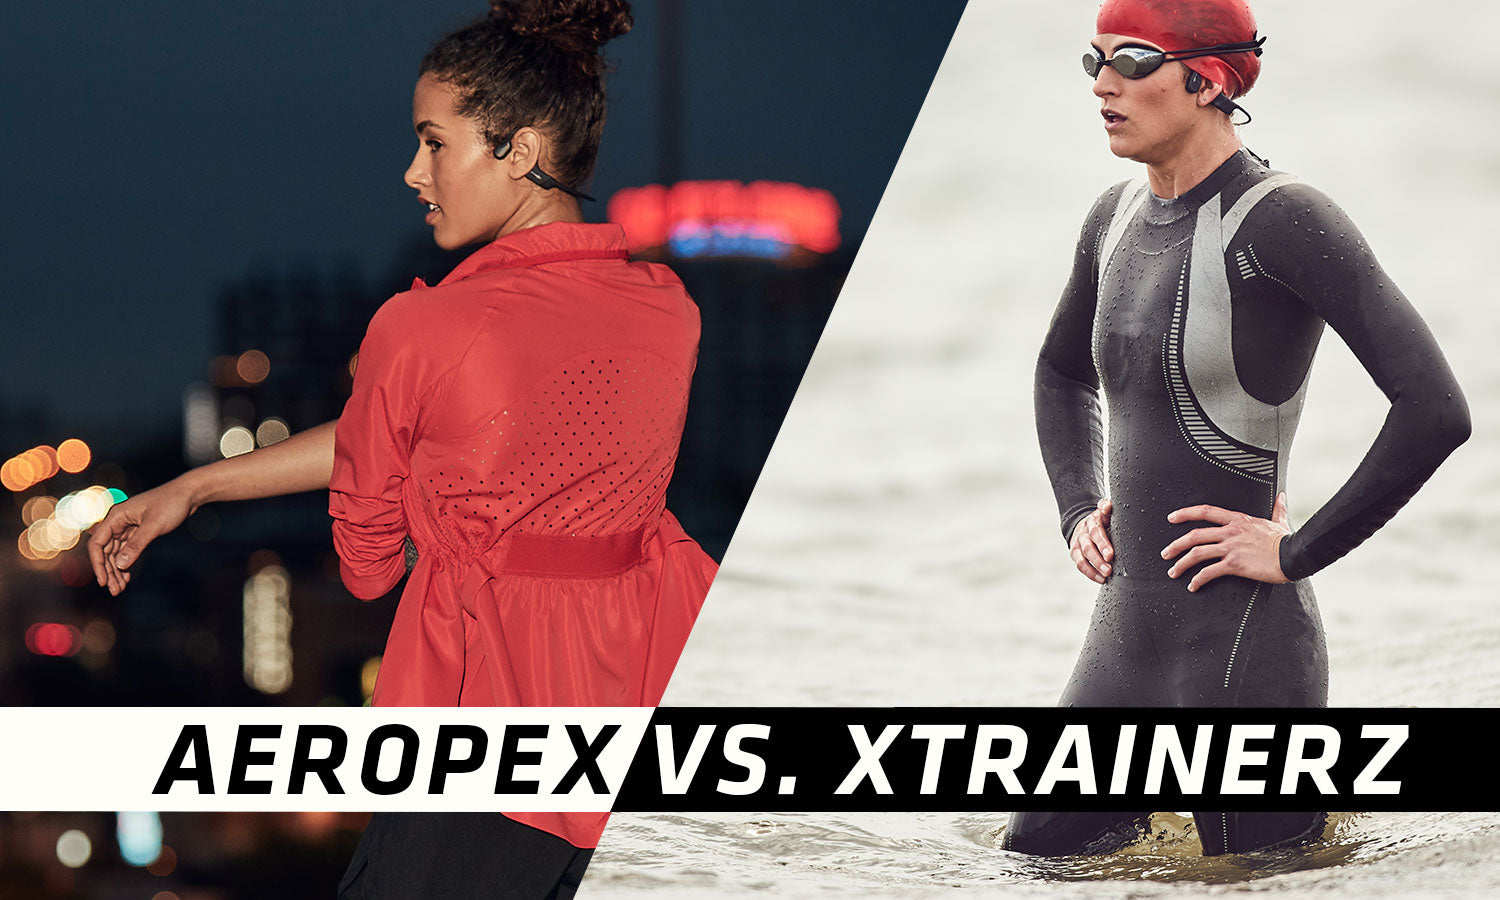 Aeropex vs. Xtrainerz